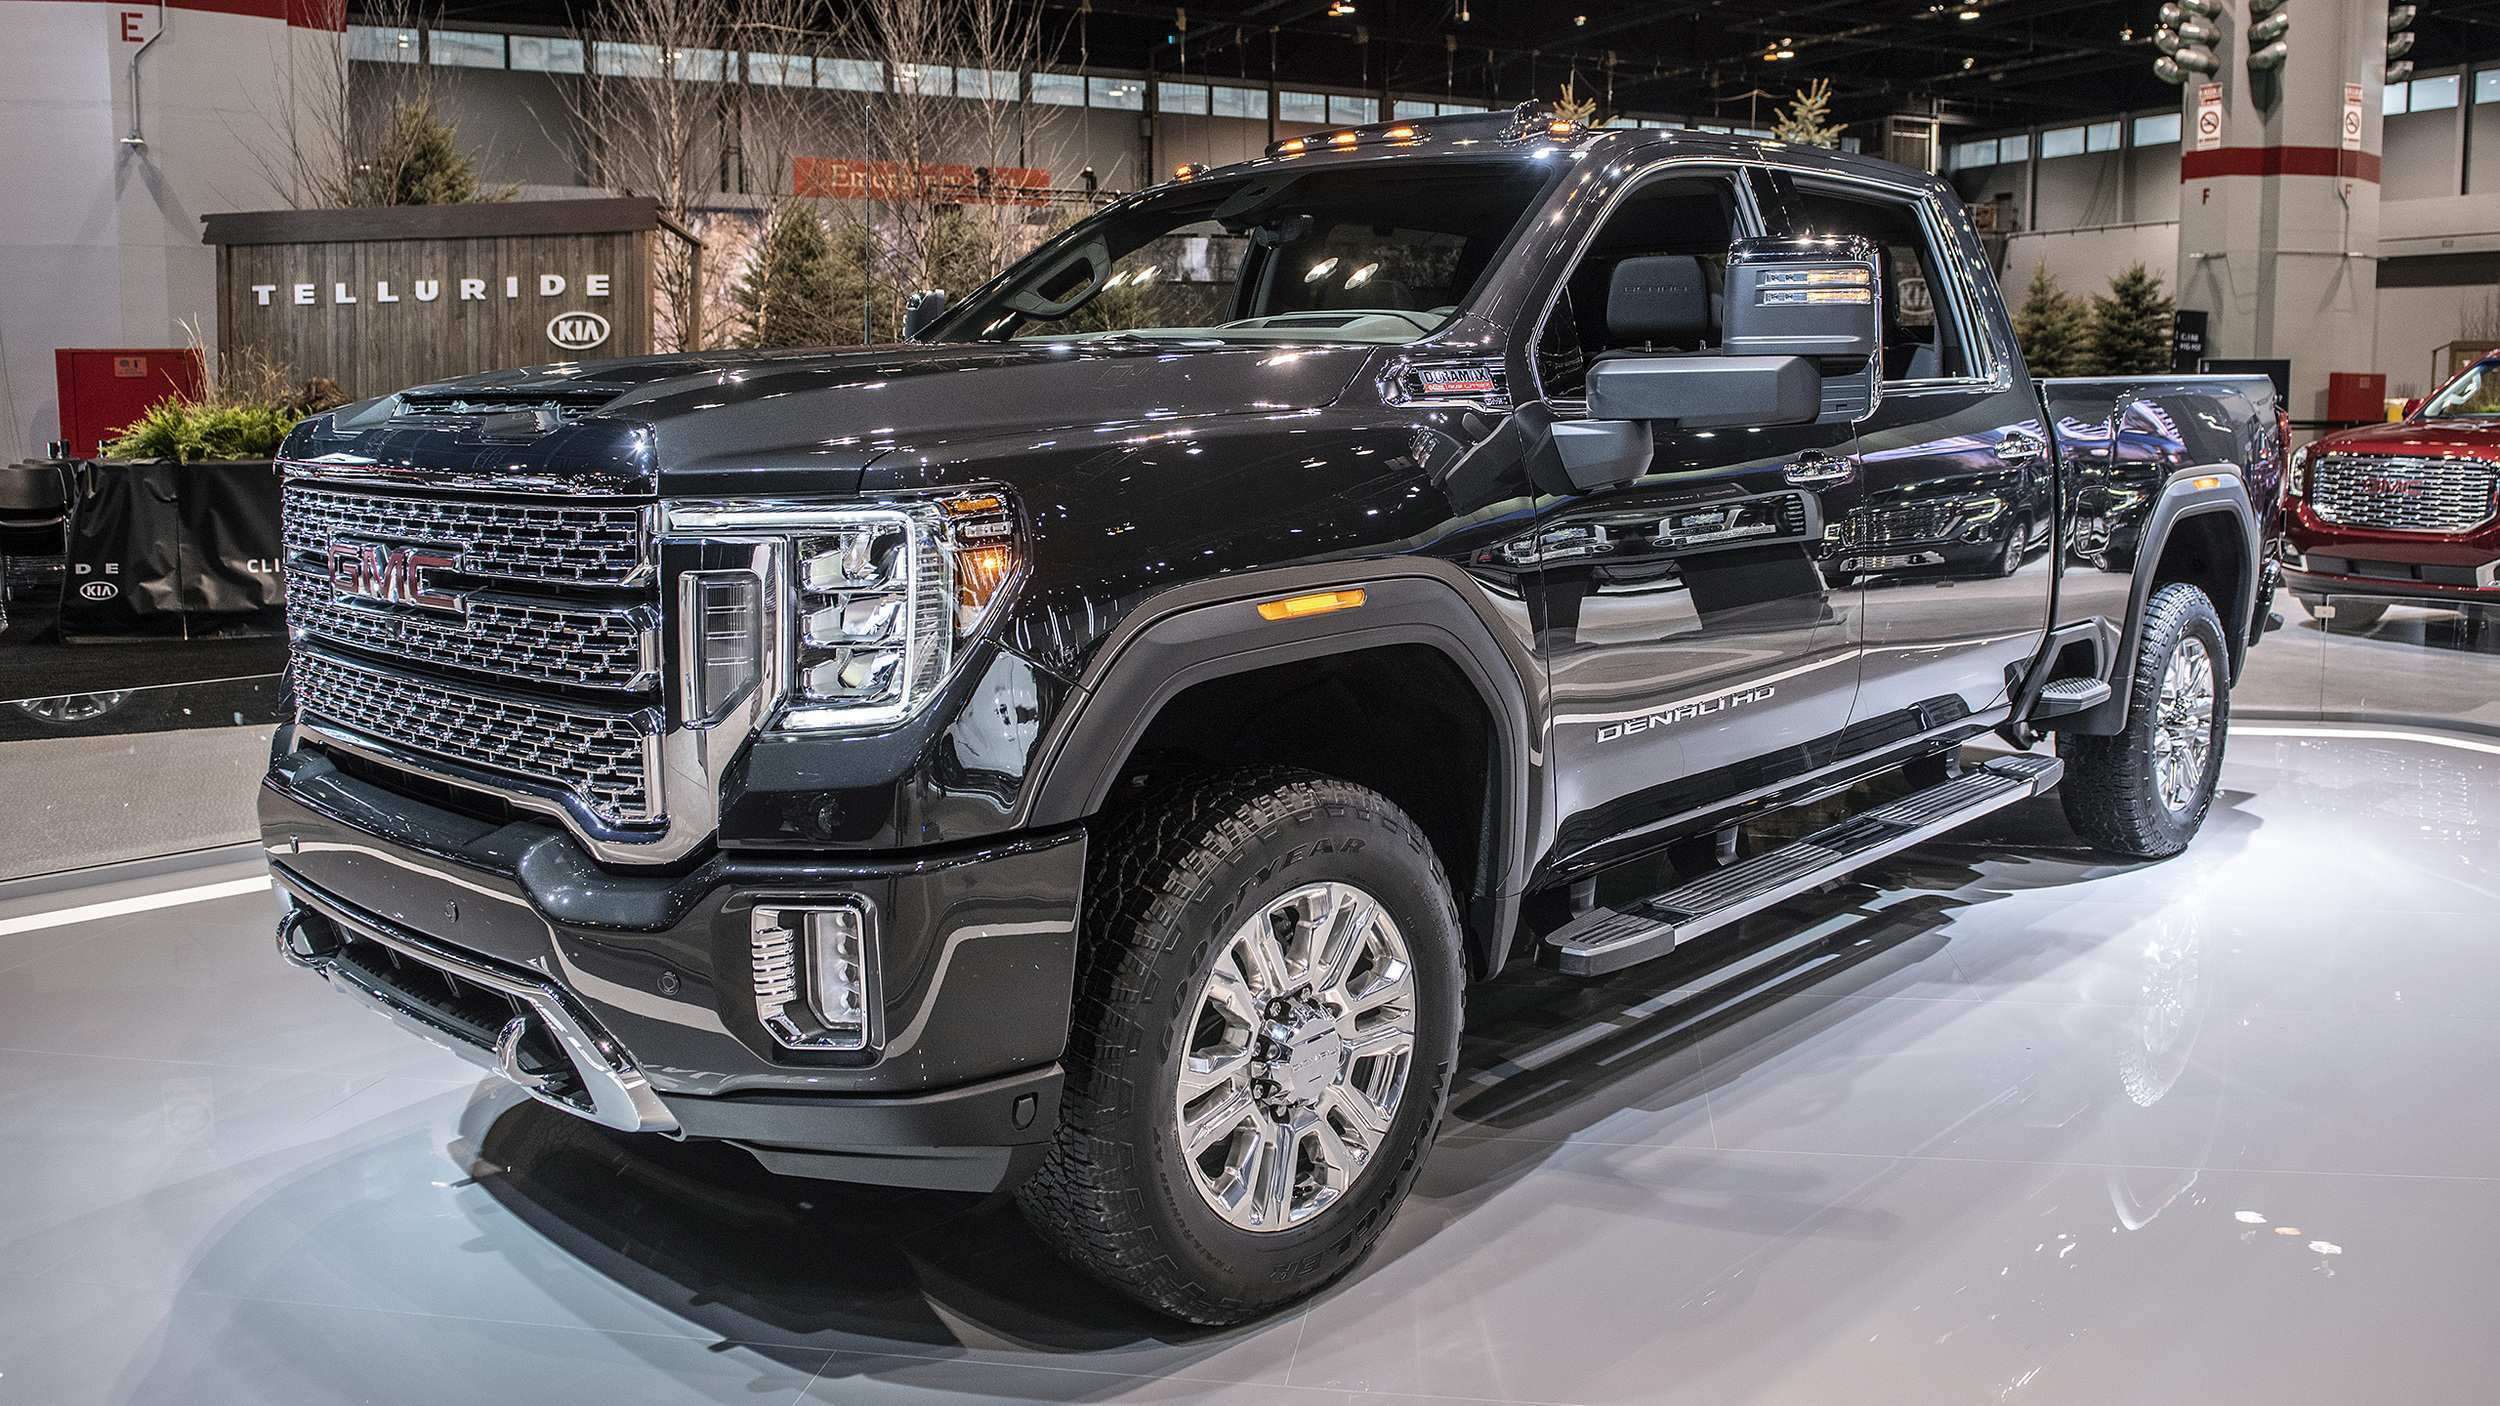 20 Great Gmc Sierra Denali Hd 2020 Performance and New Engine for Gmc Sierra Denali Hd 2020